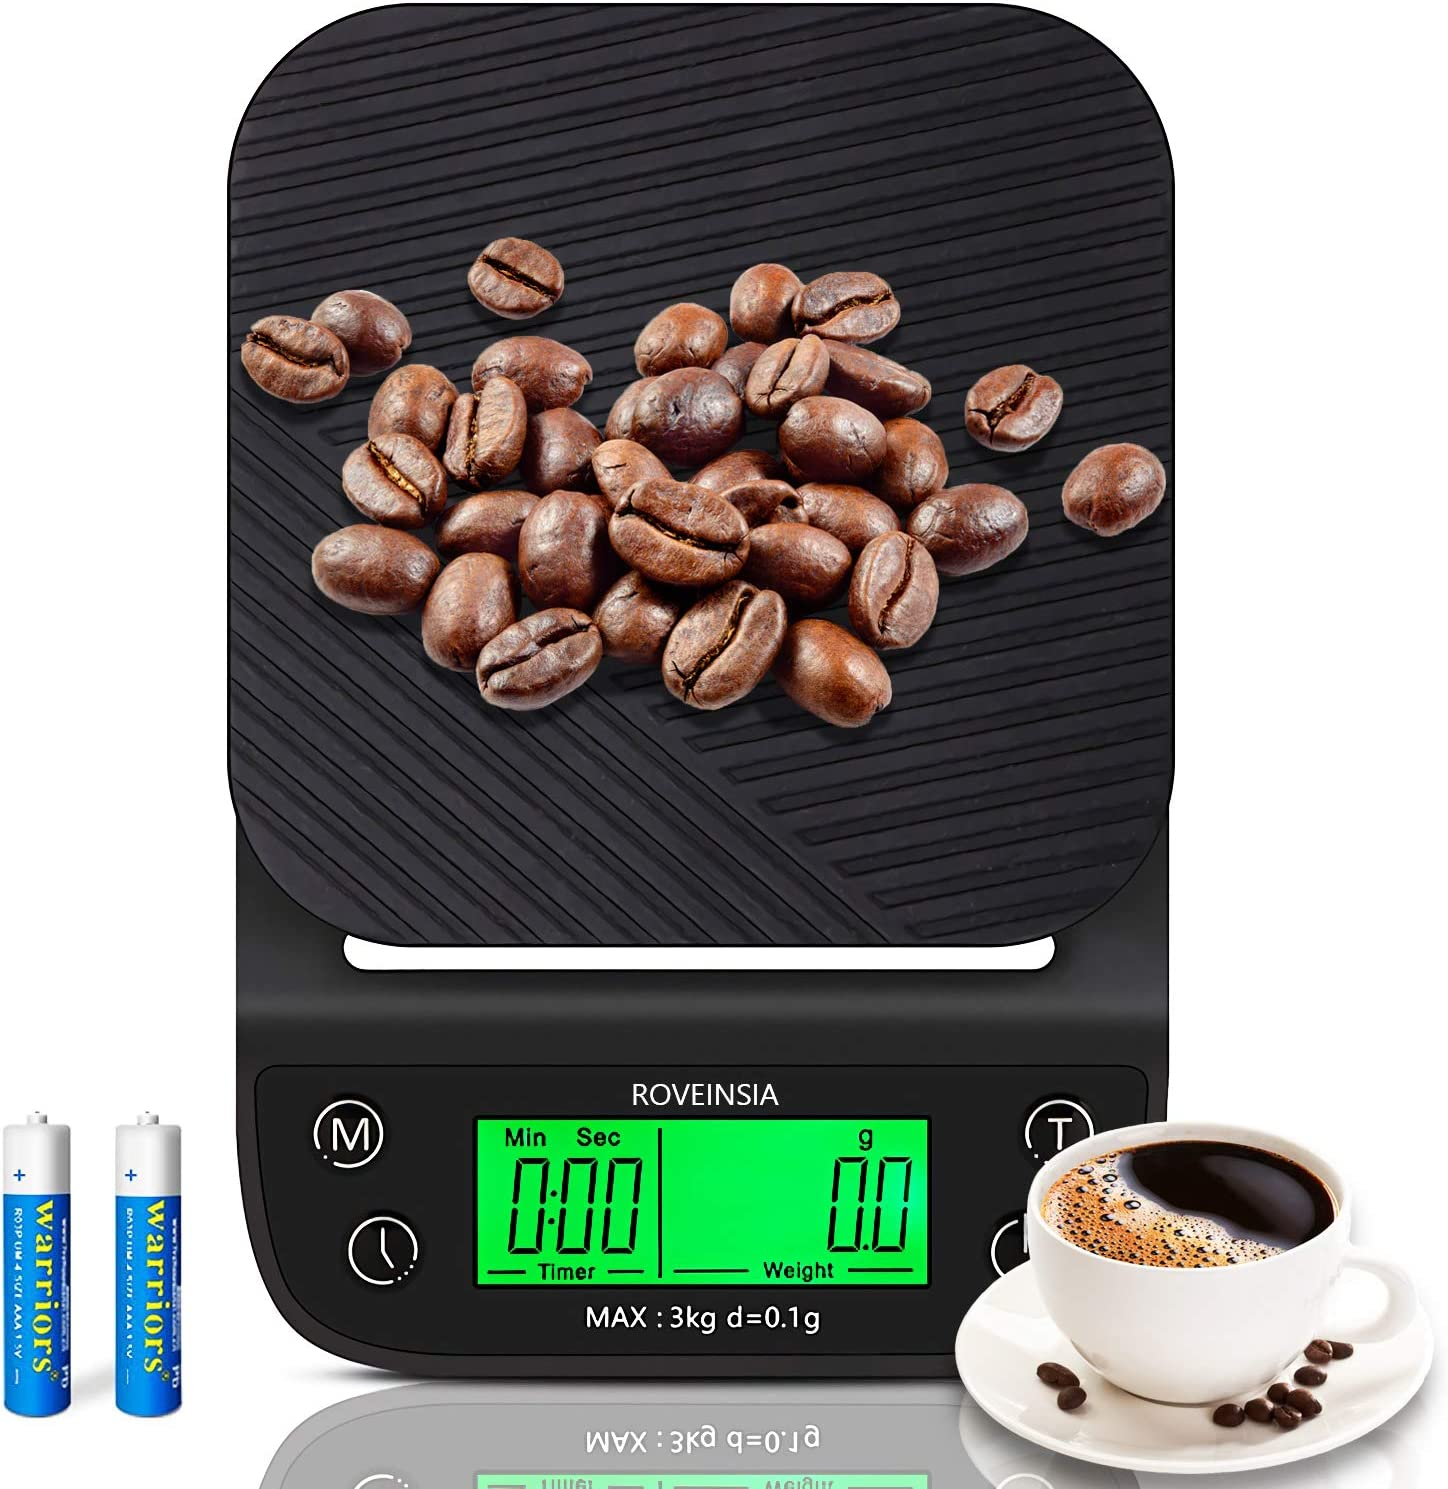 Roveinsia Food Scale, Coffee Scale with Timer, 3000g/0.1g Digital Kitchen Scale Precision Weight Grams and Oz for Coffee Brewing, Cooking, Baking, High Accuracy with Back-Lit LCD (Battery Included)